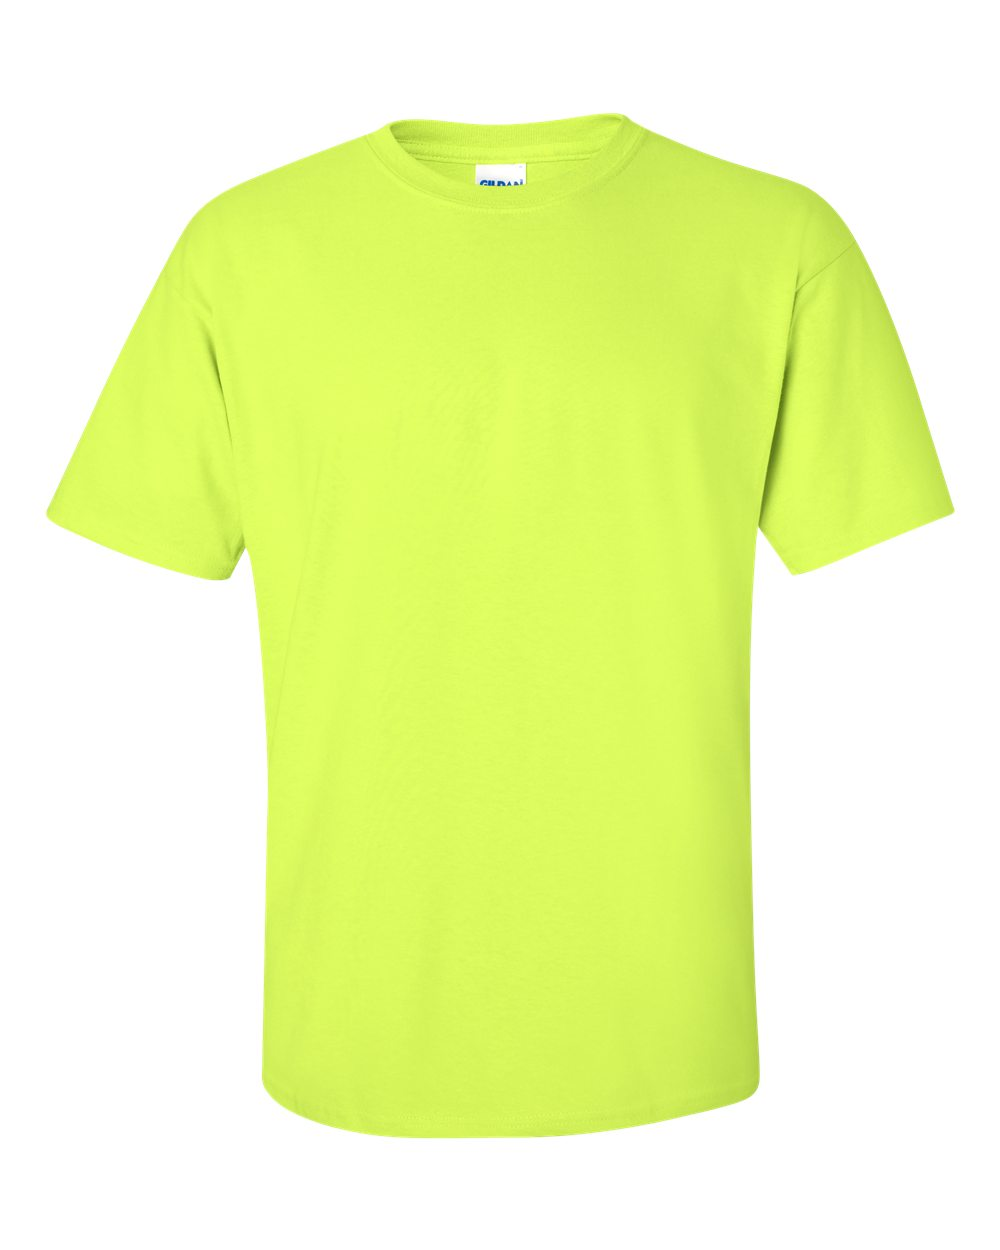 Gildan_2000_Safety_Green_Front_High.jpg